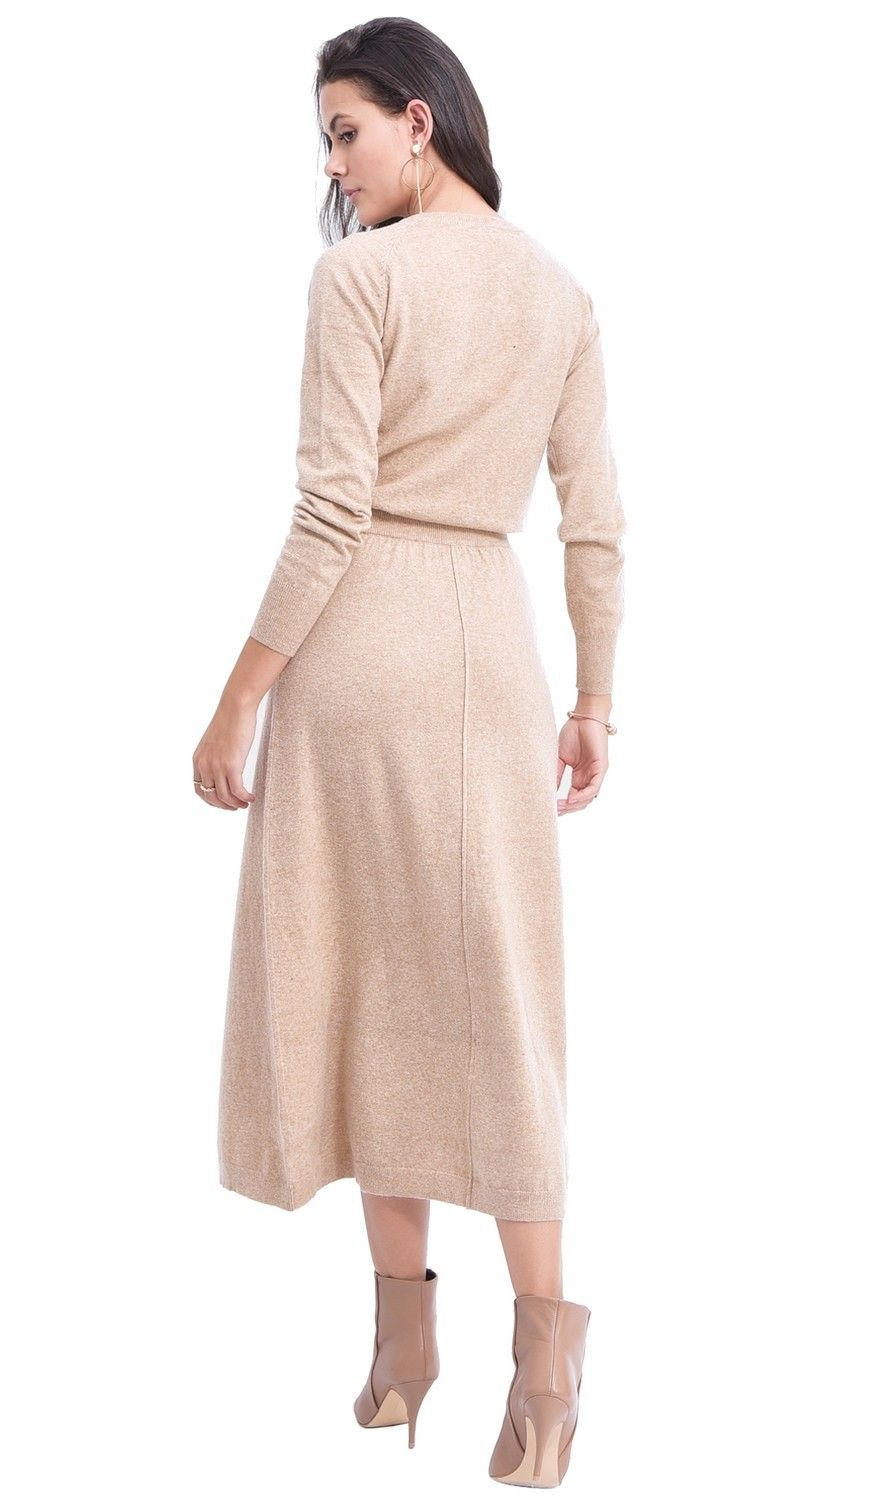 Assuili Ribbed Midaxi Skirt in Beige